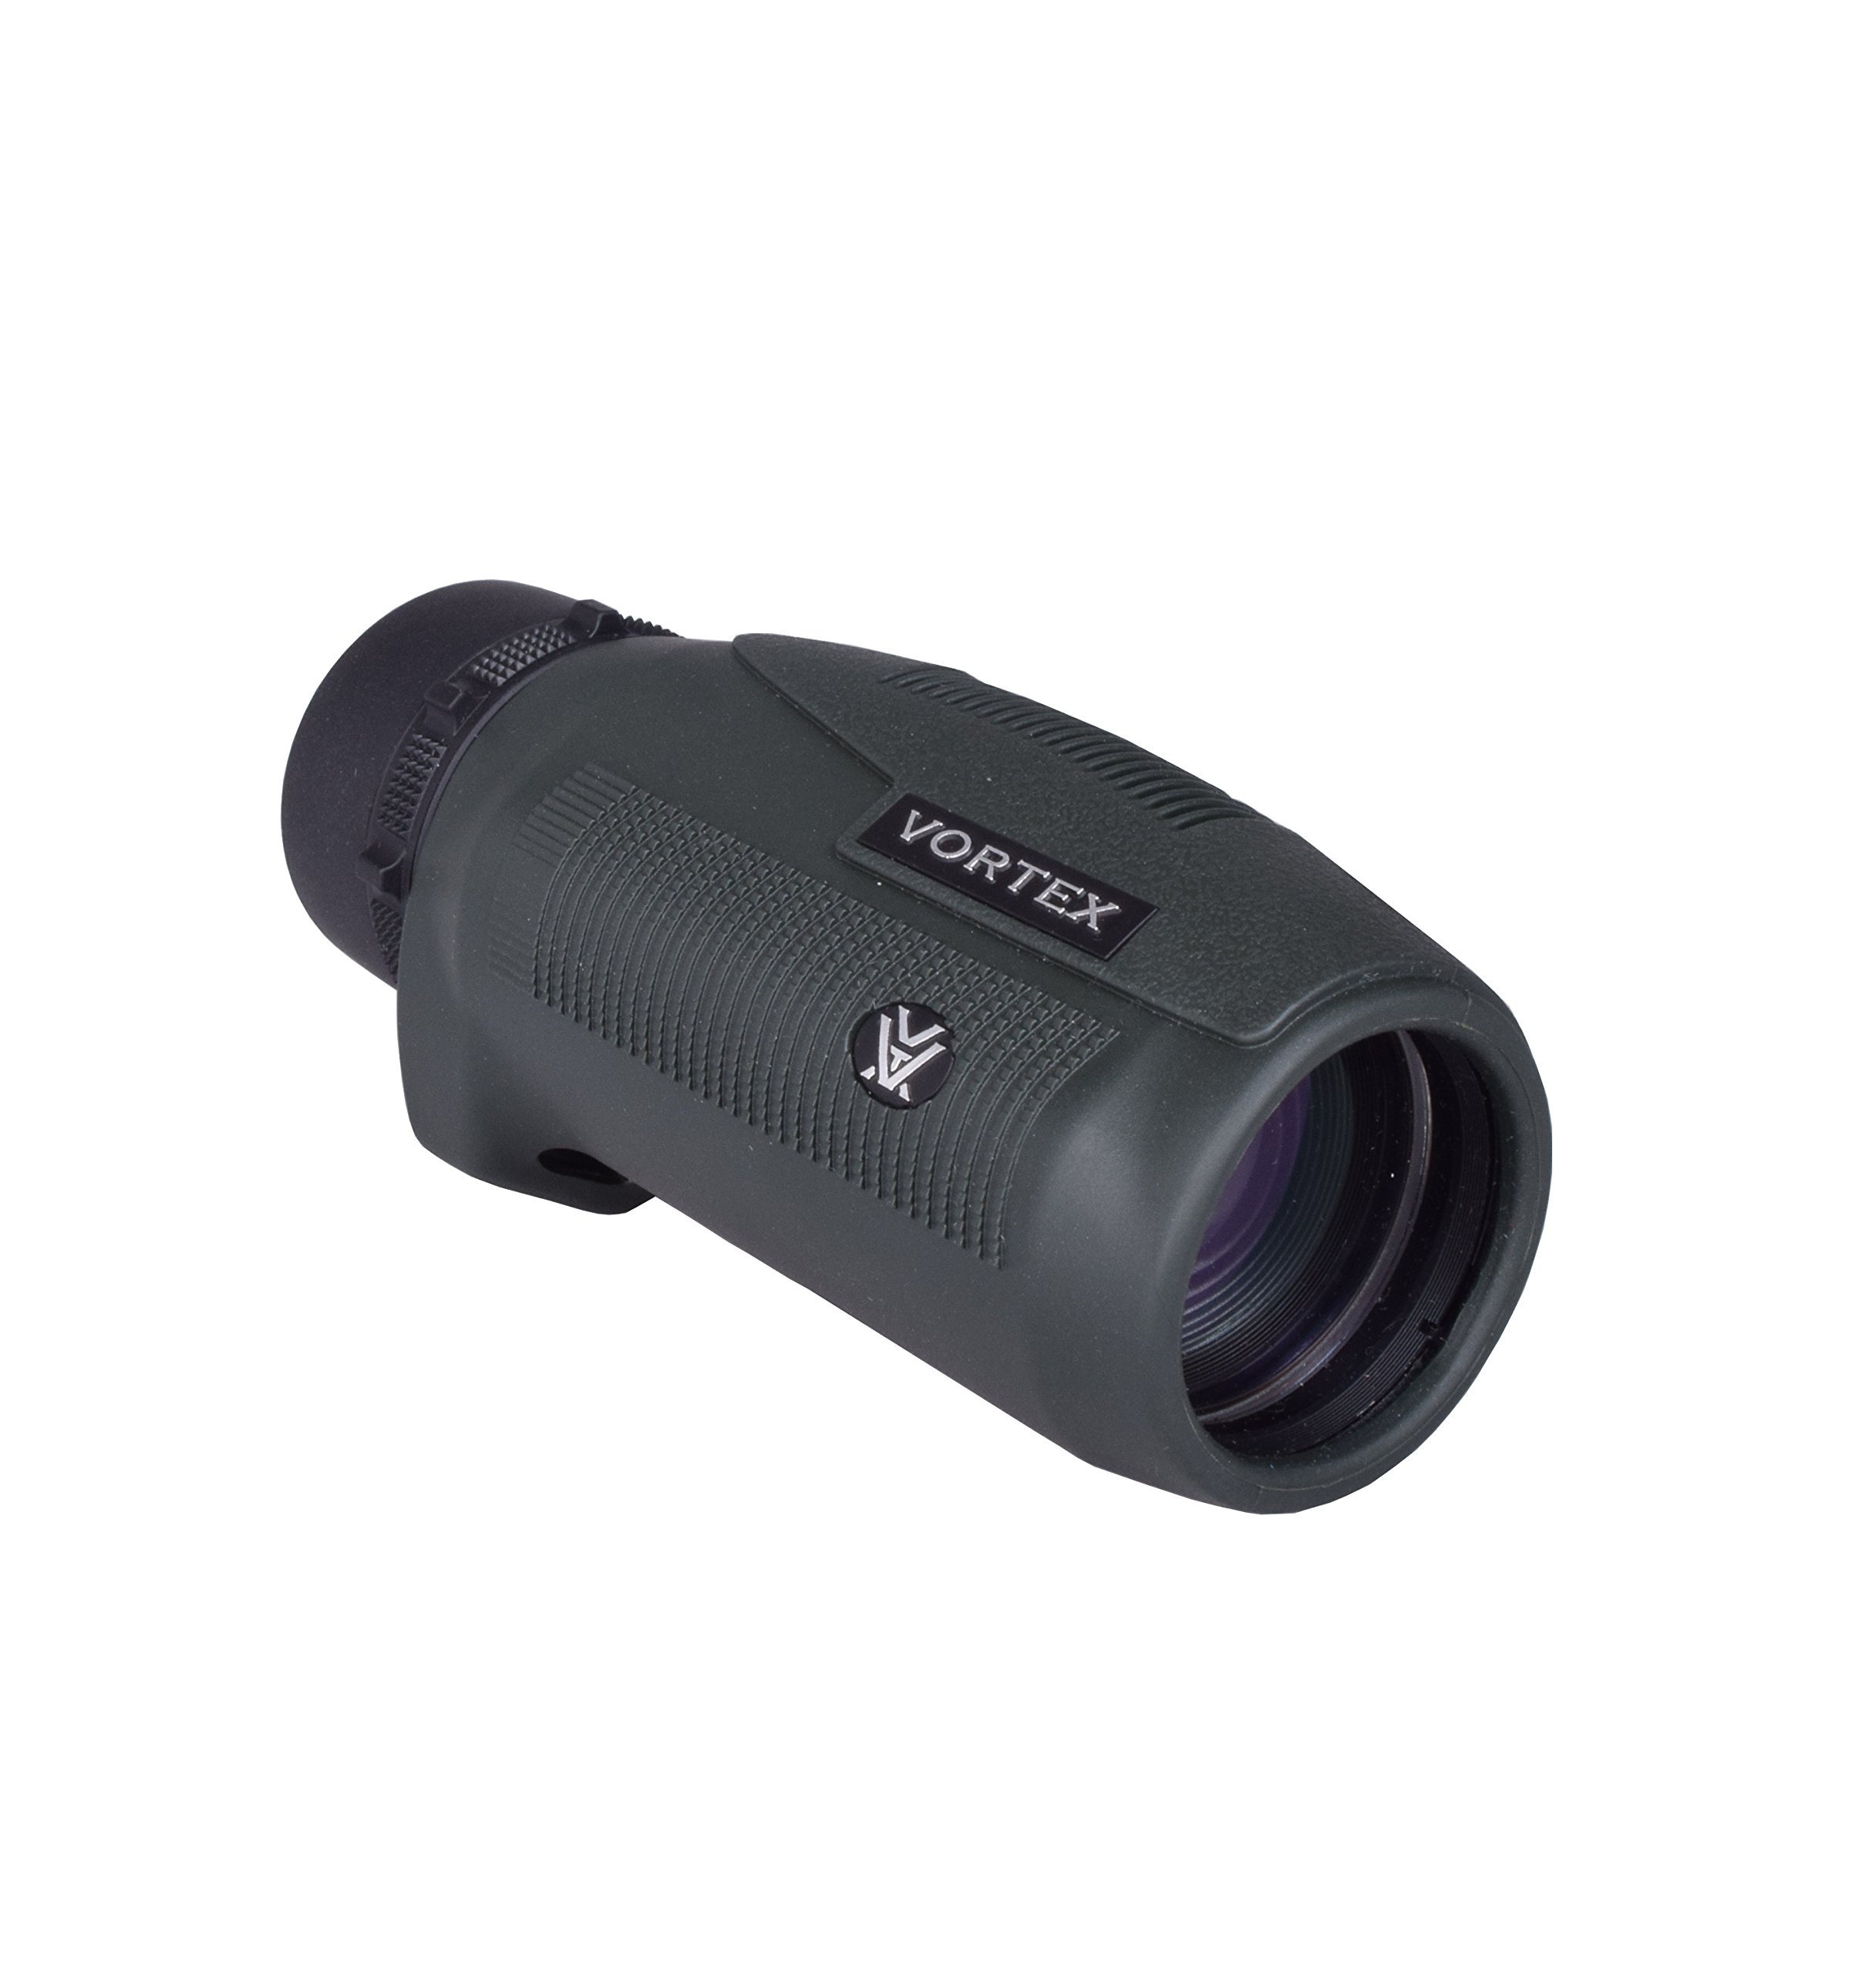 Vortex Solo 10x36 mm Monocular by Vortex Optics (Image #1)